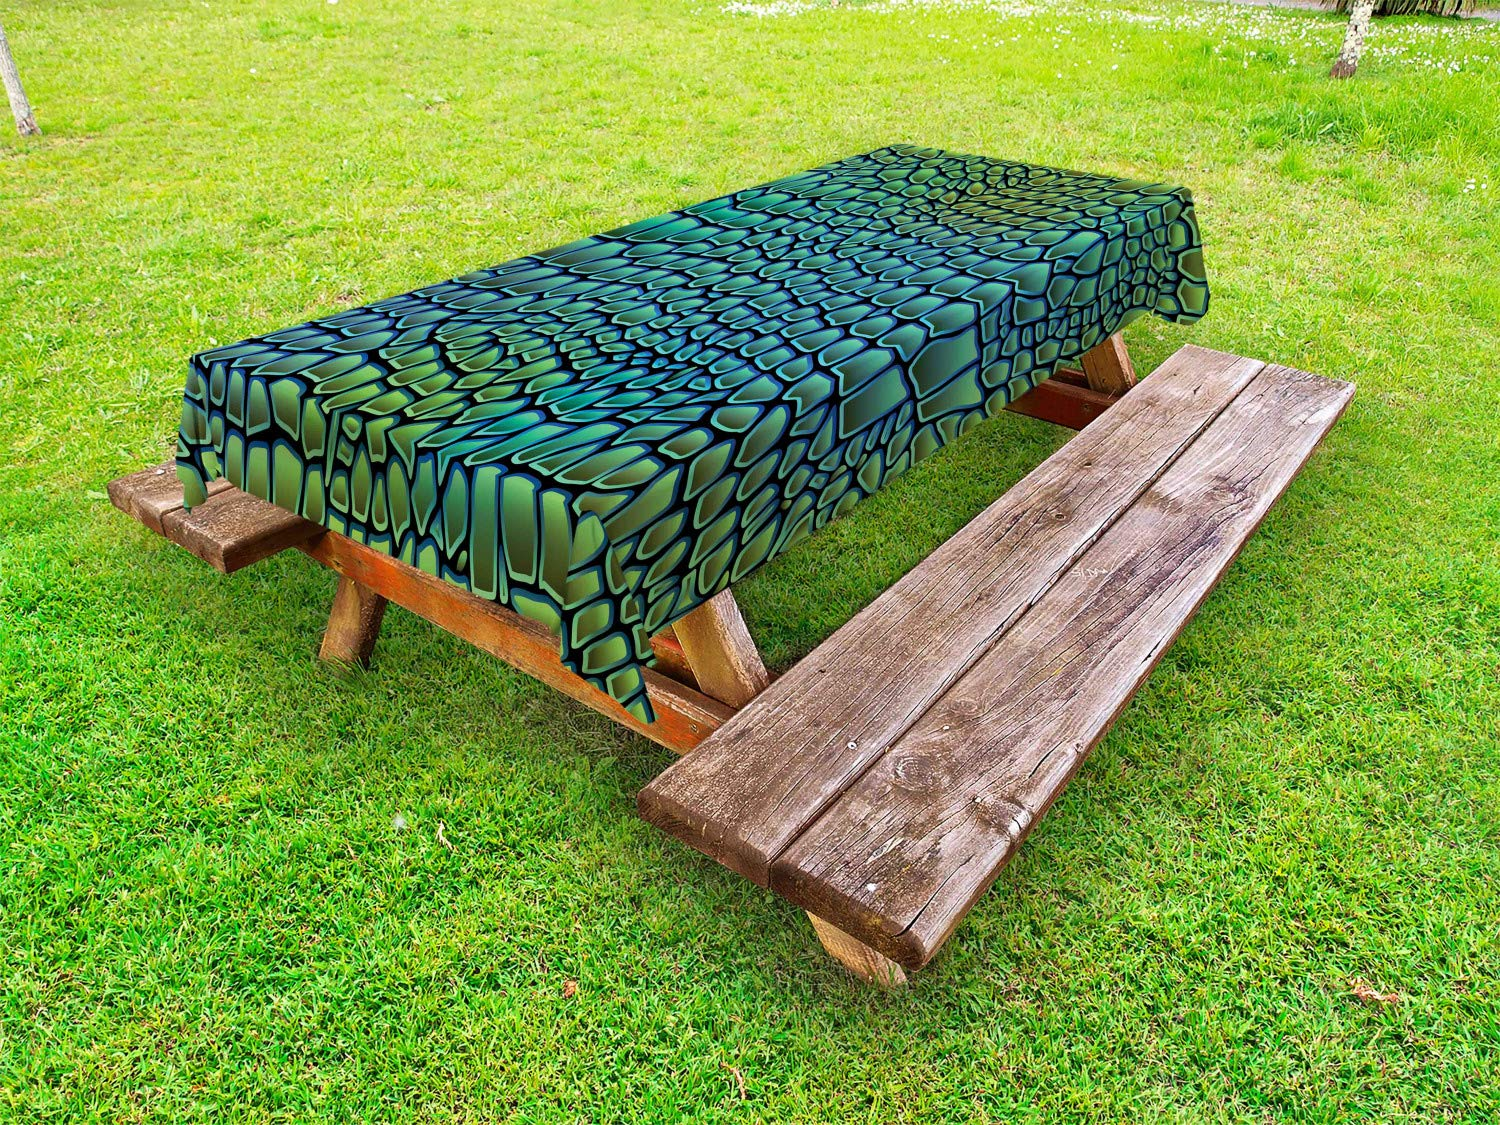 Ambesonne Abstract Outdoor Tablecloth, Alligator Skin African Animal Crocodile Reptile Safari Wildlife Vibrant Artwork, Decorative Washable Picnic Table Cloth, 58 X 120 Inches, Green Blue